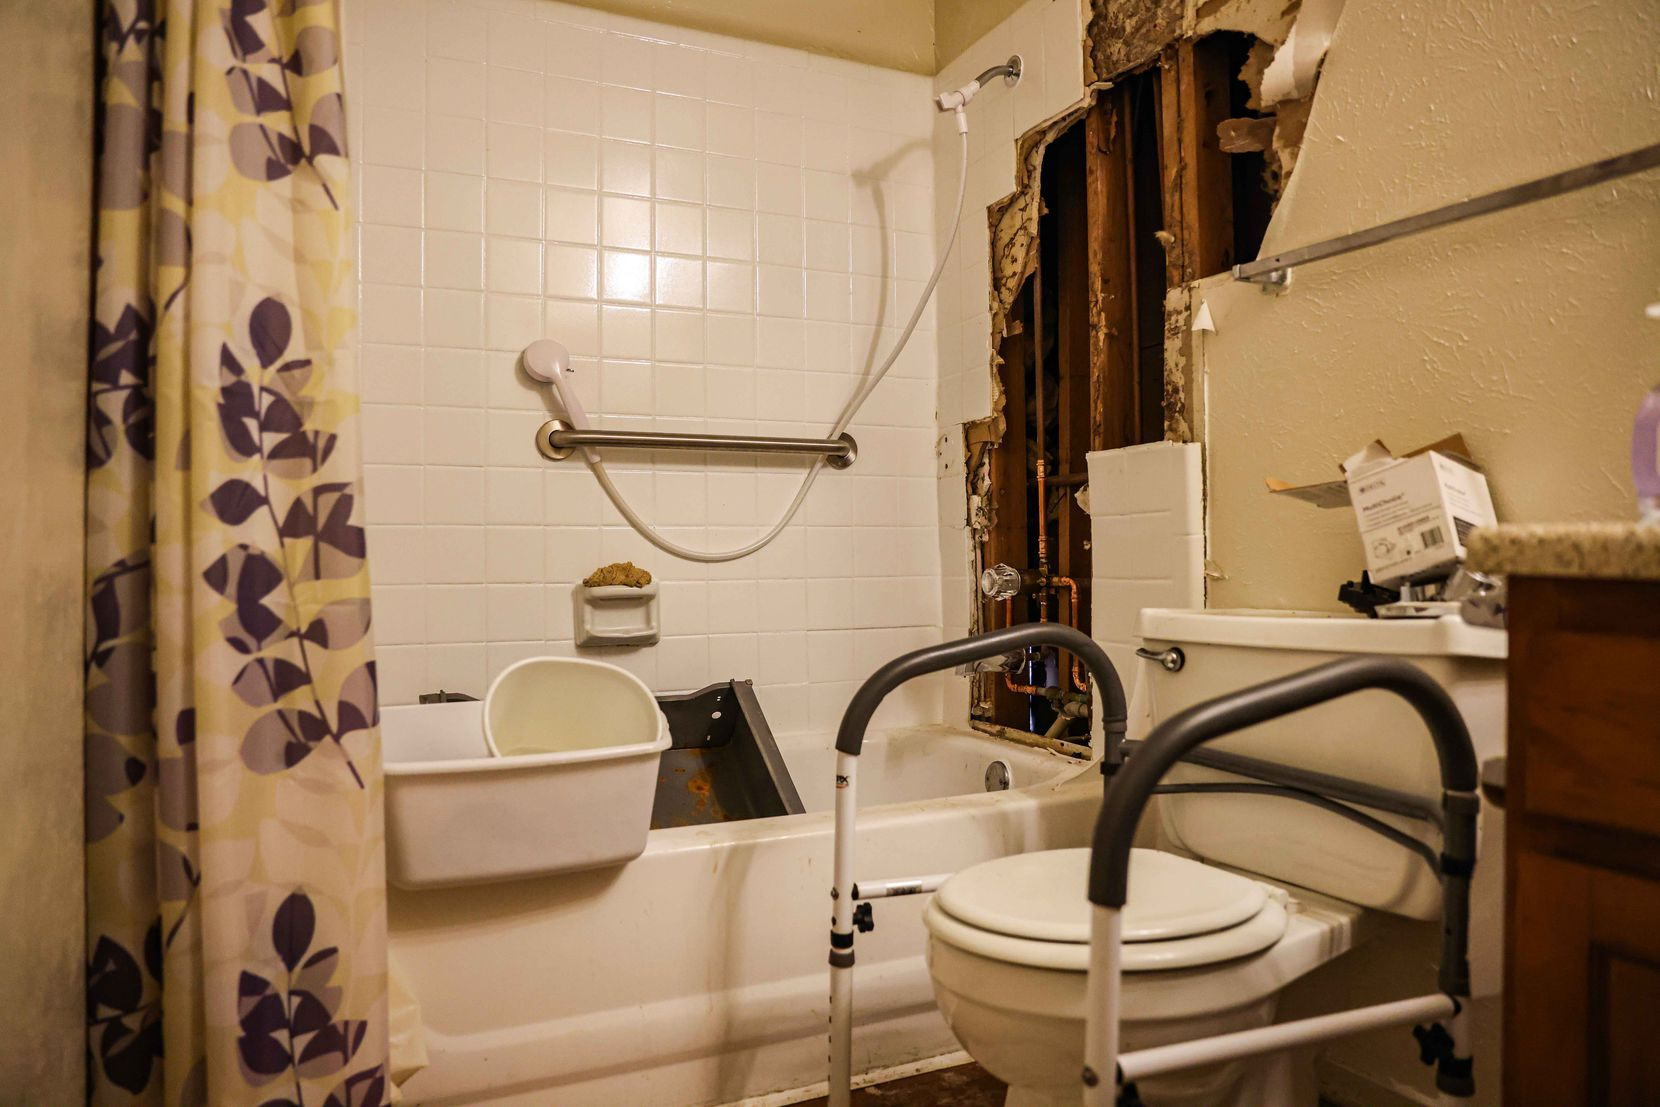 Tom Strzyz's bathroom has not been fully functional since pipes burst during the winter storm that hit Texas in mid-February. Strzyz along with several residents, lost power and had to fetch water from the complex's swimming pool. Hot water only began to flow this week in spurts at the Wildflower Apts complex in Dallas on Thursday, March 11, 2021.